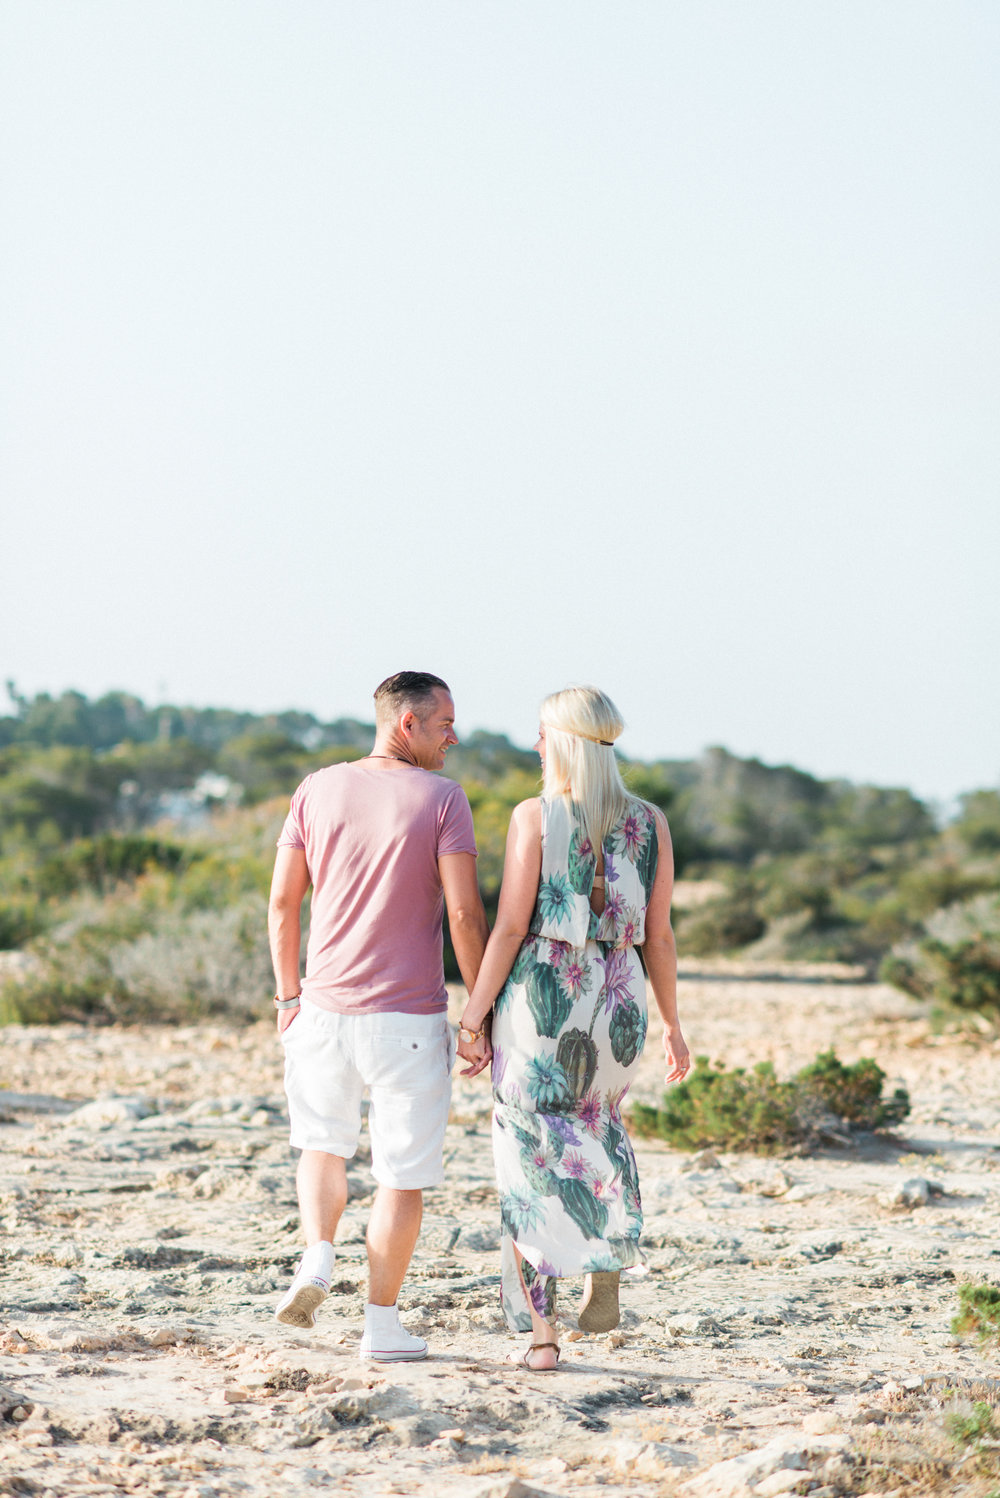 FLYTOGRAPHER  Vacation Photographer in Ibiza - Heike